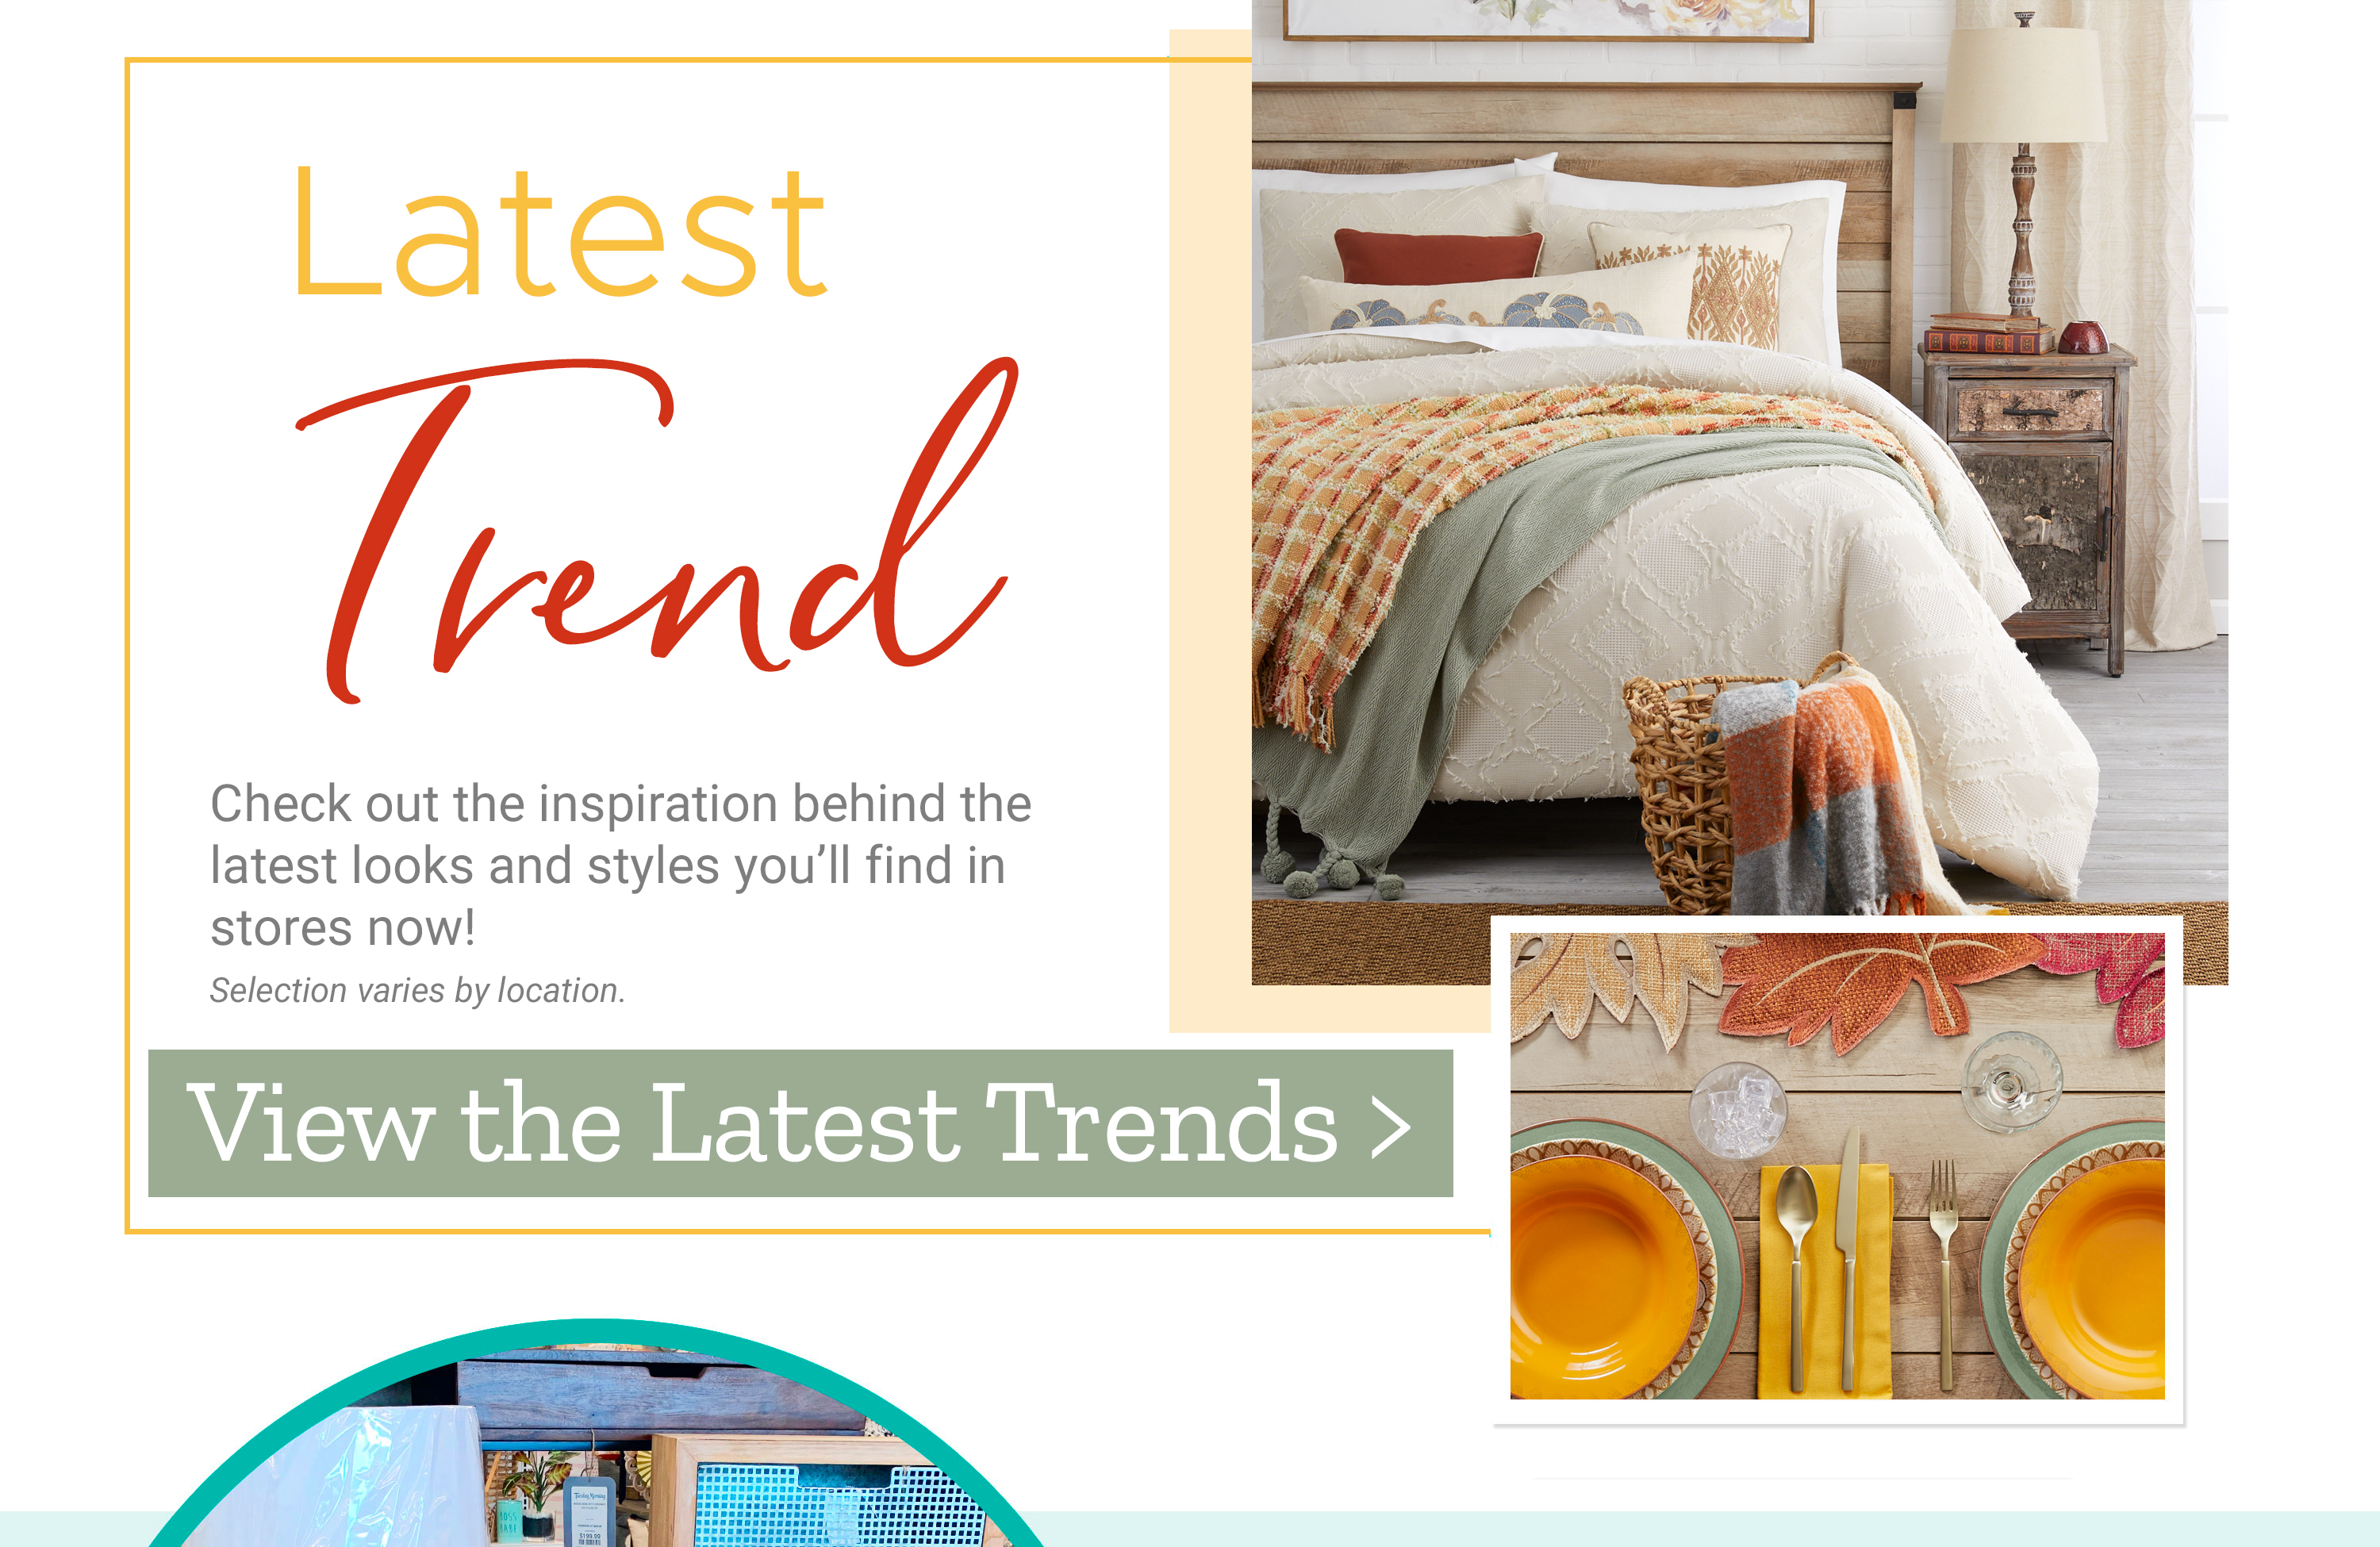 Latest Trends - View the Latest Trends >